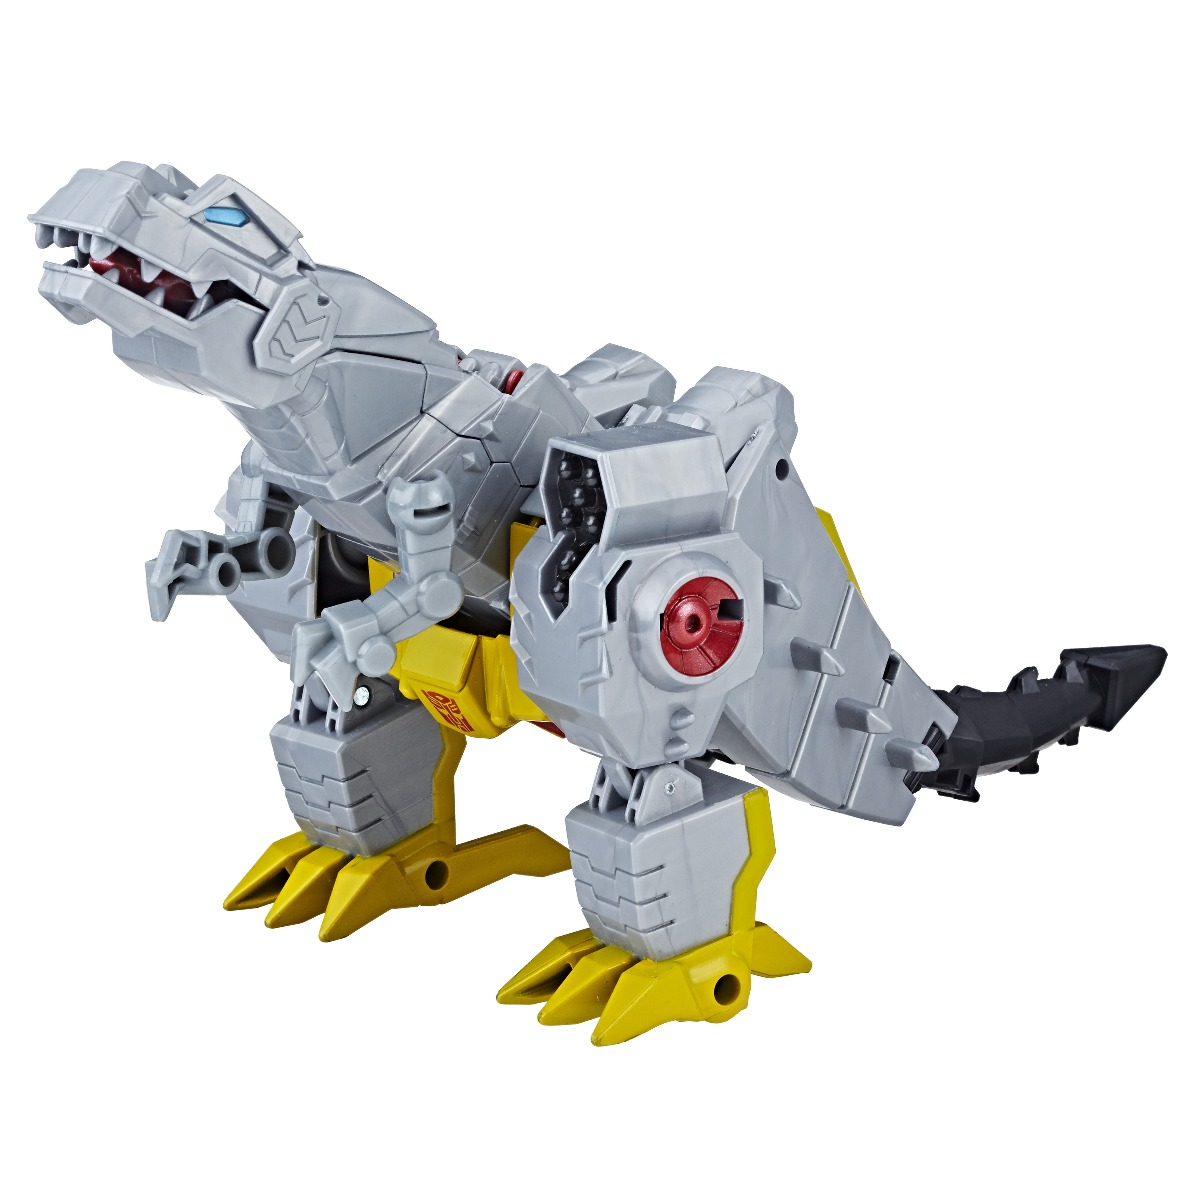 Figurina Transformers Cyberverse Action Attackers Ultra Grimlok